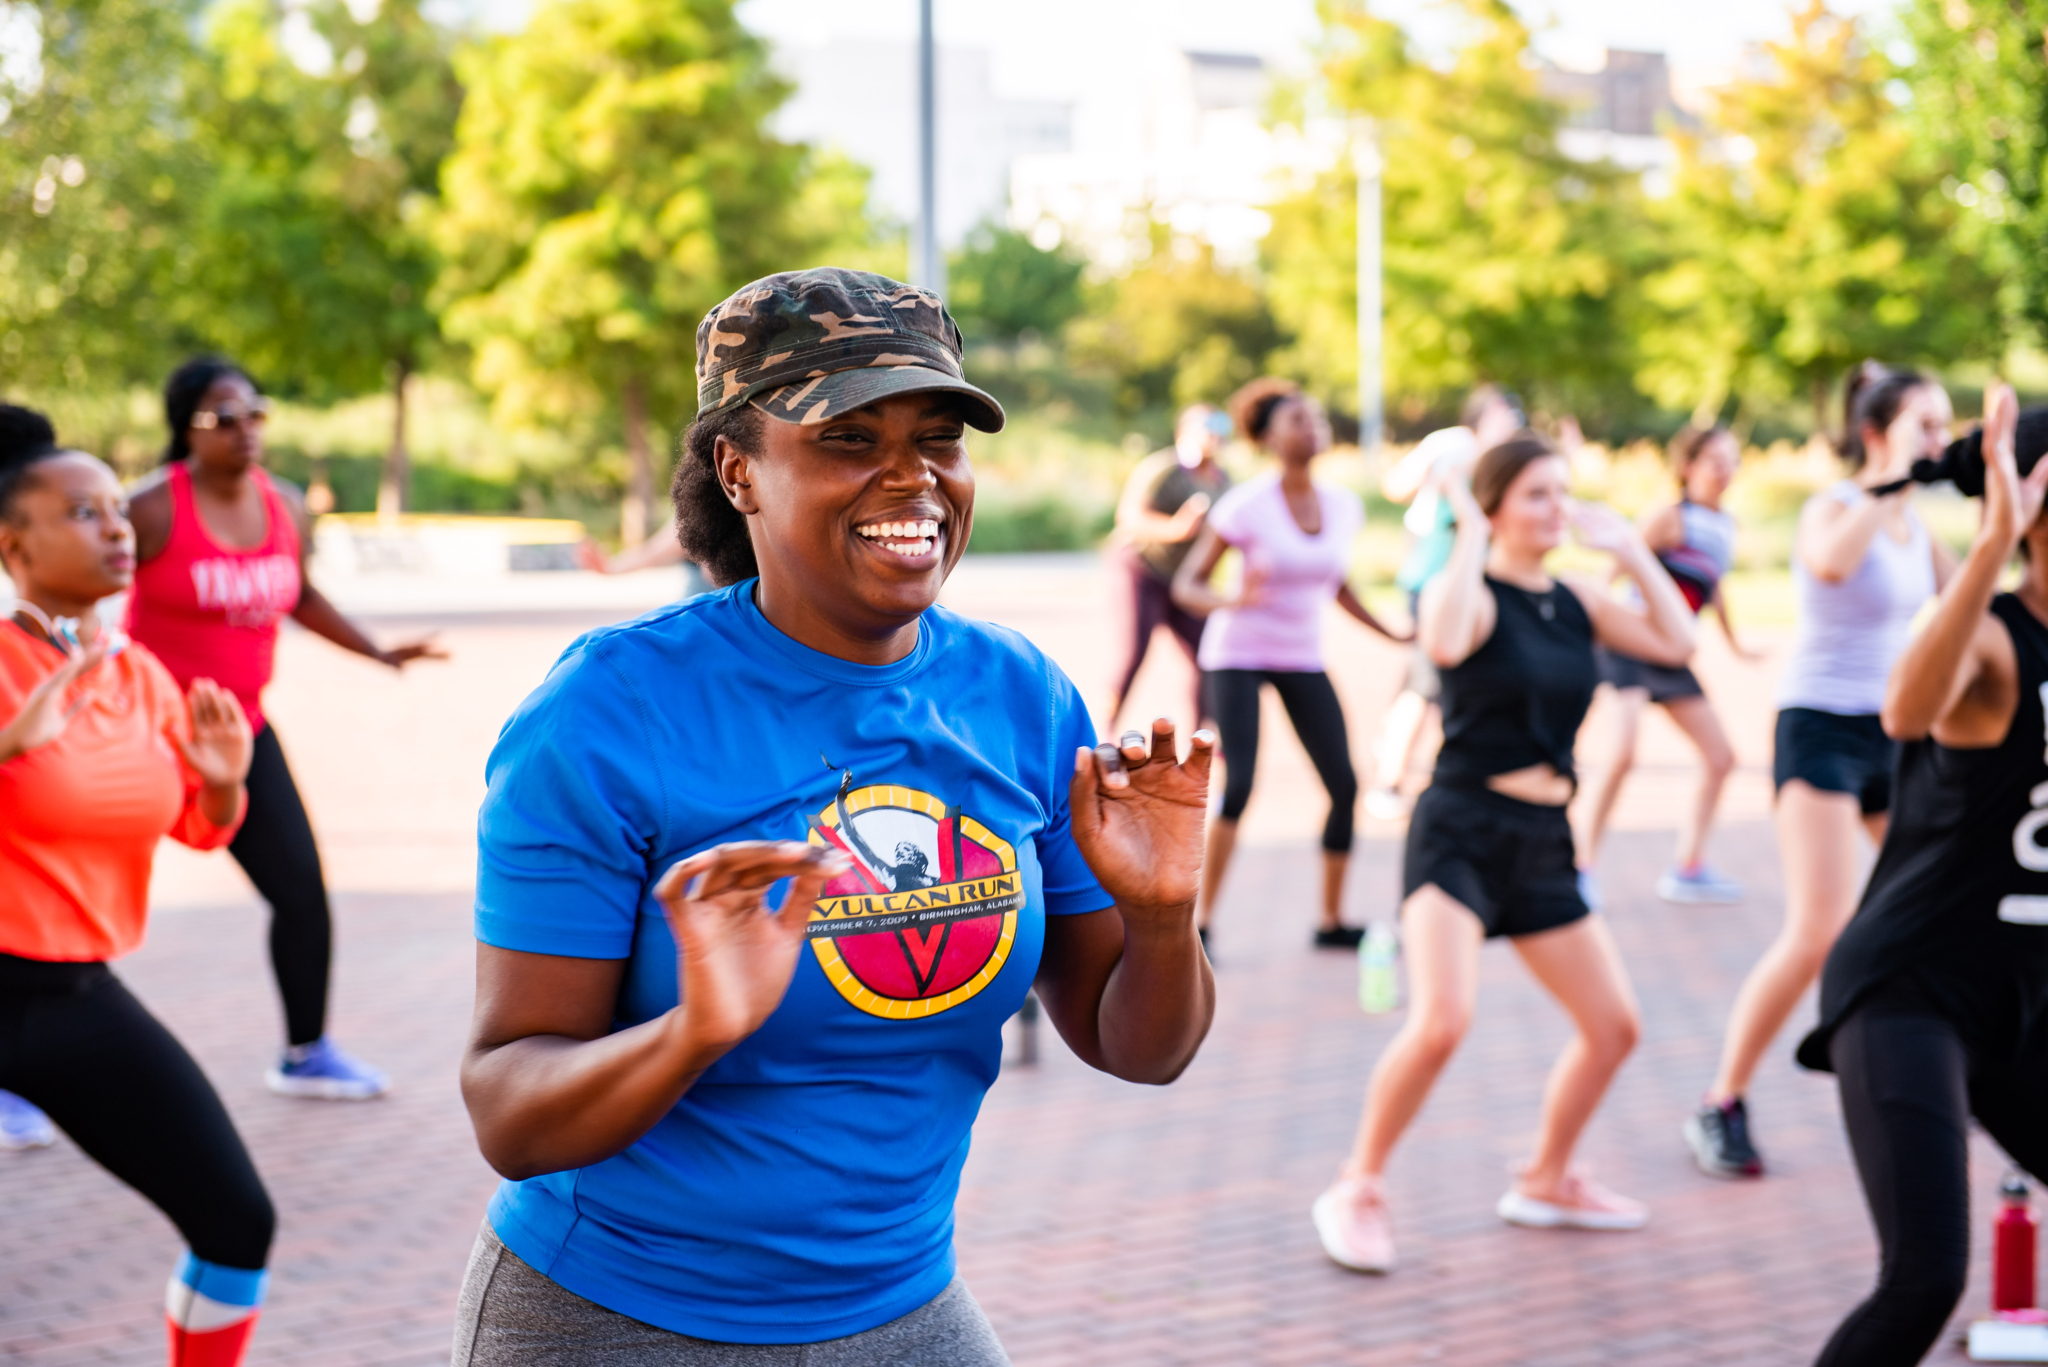 Fit and frugal: Free exercise classes in Railroad Park